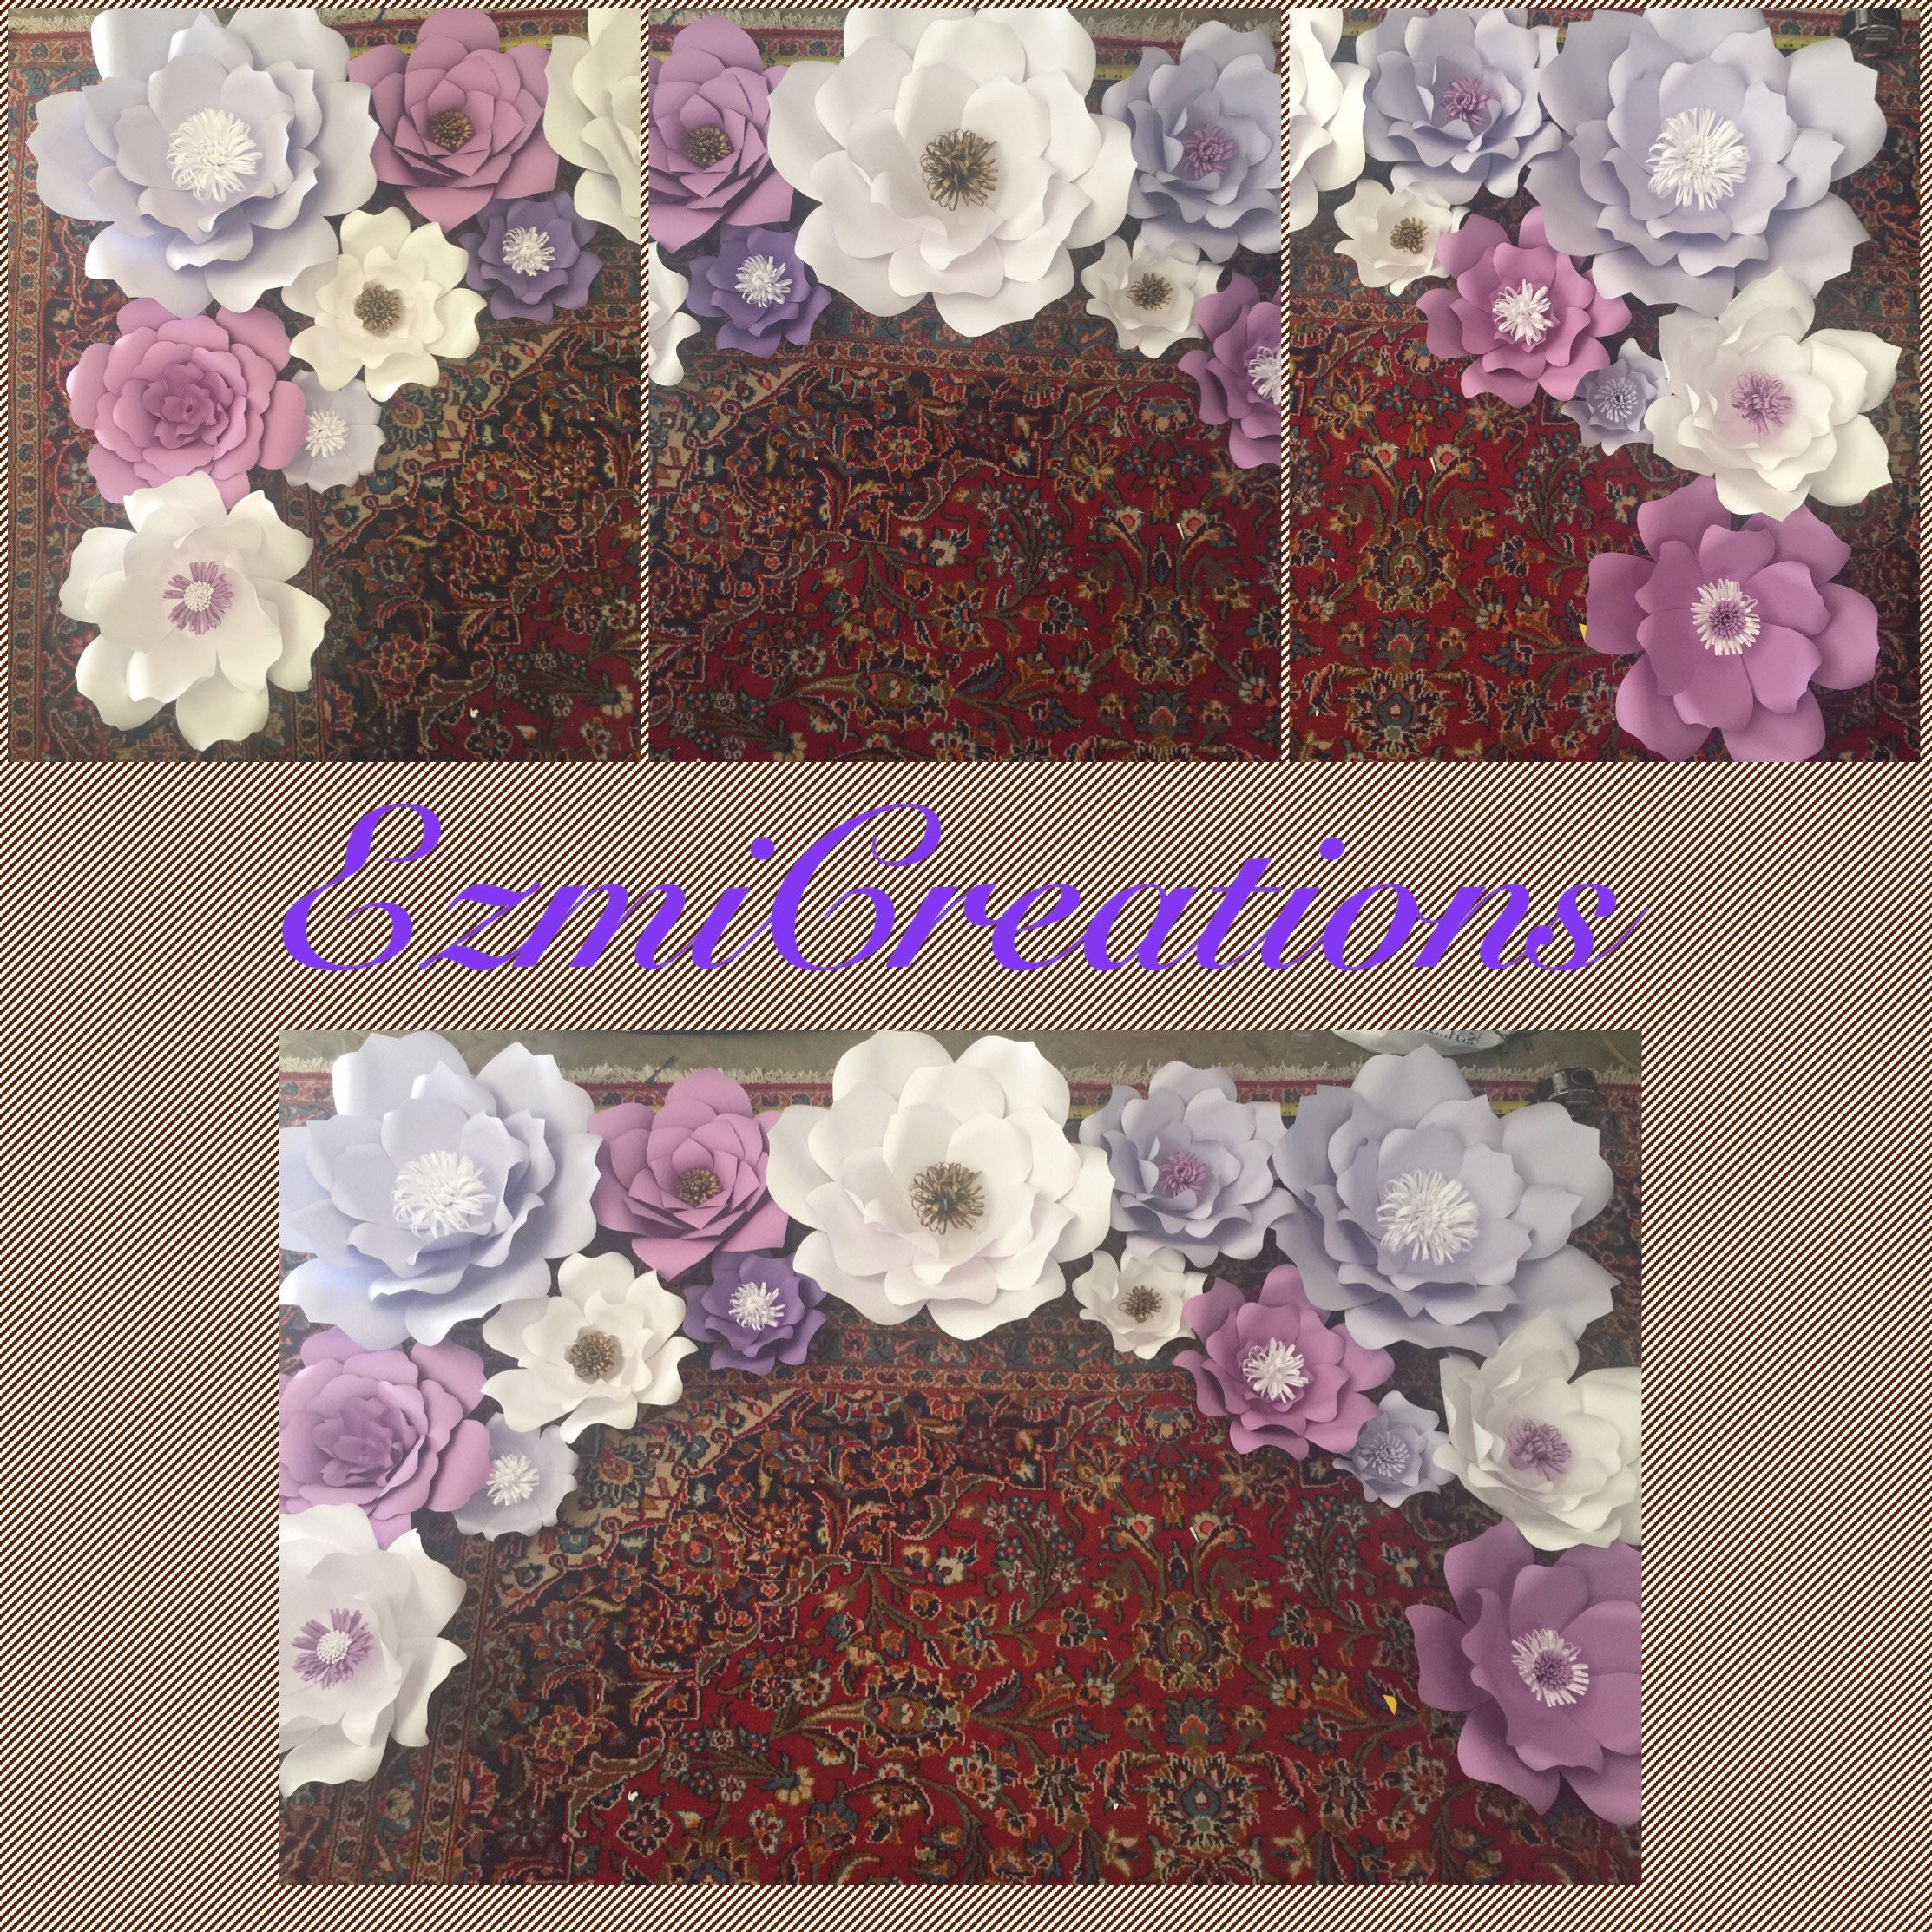 528b65798 Paper flower backdrop DIY KIT any color please read